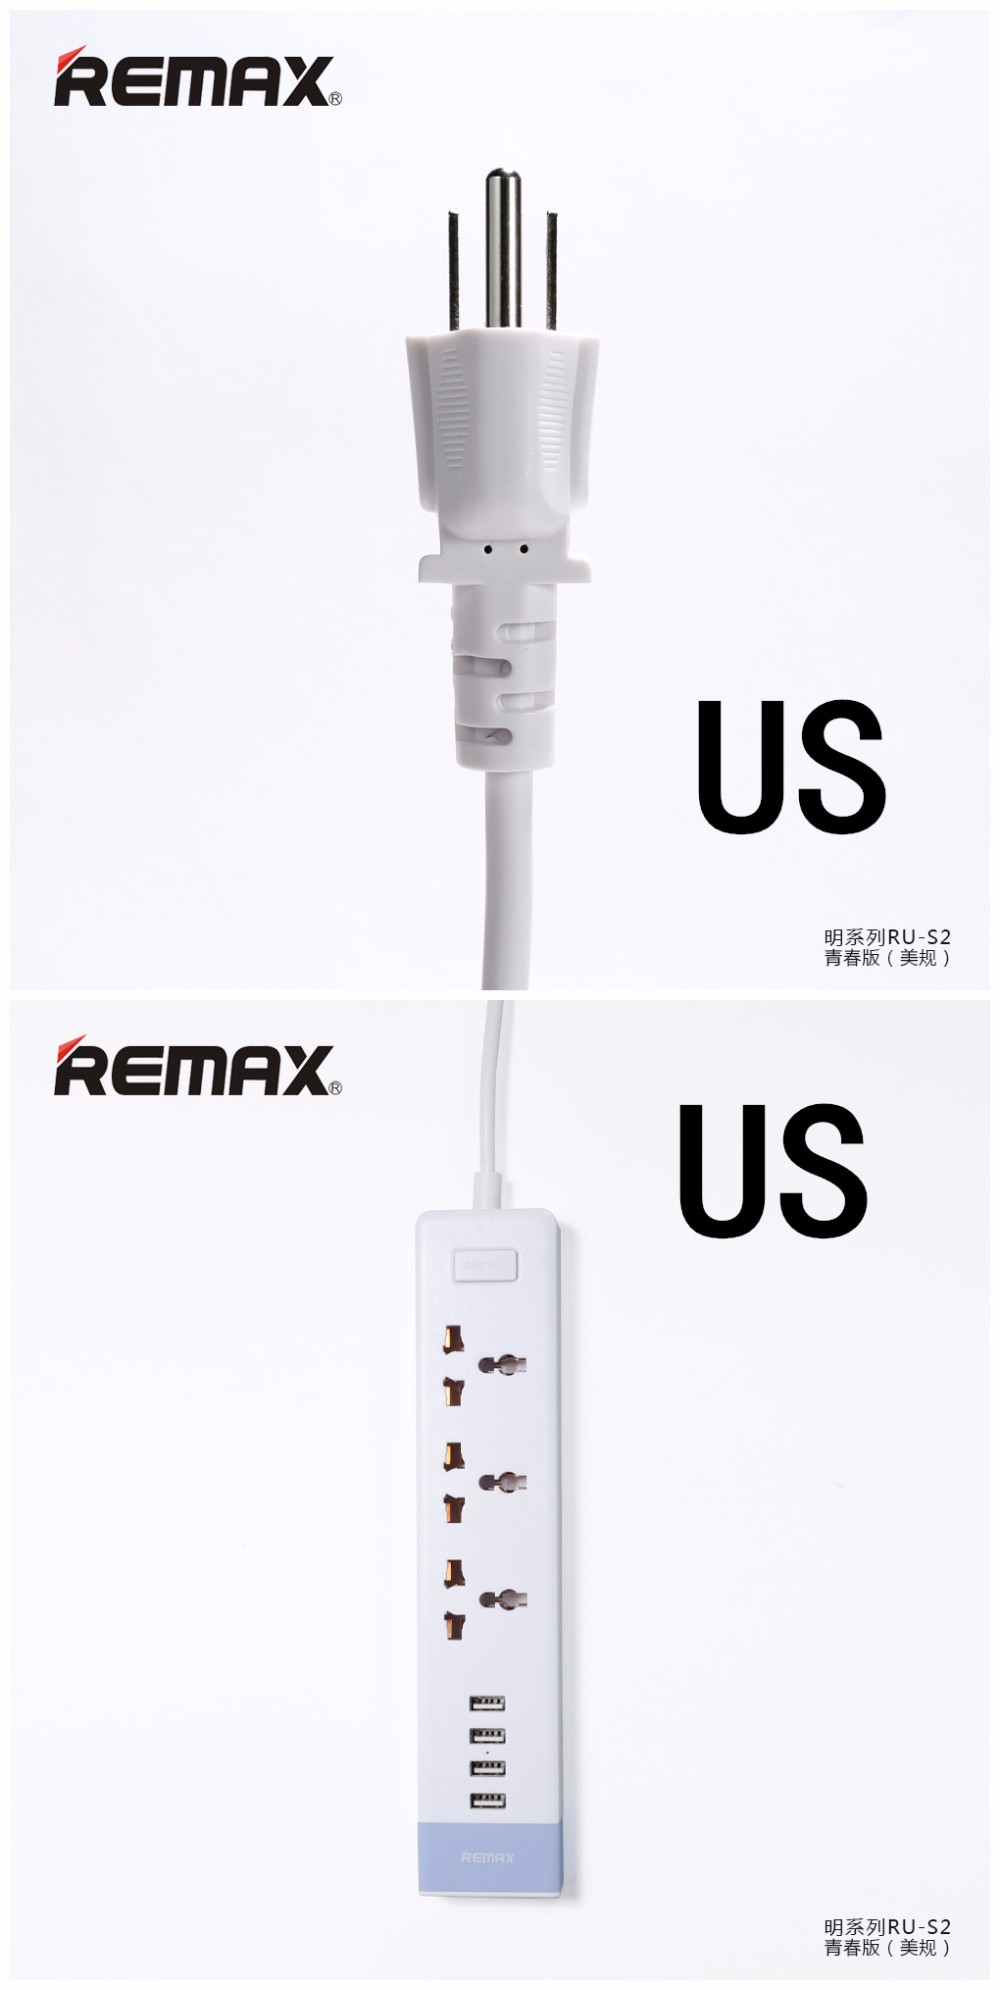 Remax 4usb Power Outlet Strip Desktop Adapter Electrical Plug Eu Uk Original Ming Series 3 Plus Socket Ru S2 Style Modern New Product Multi Functions For Space Saving